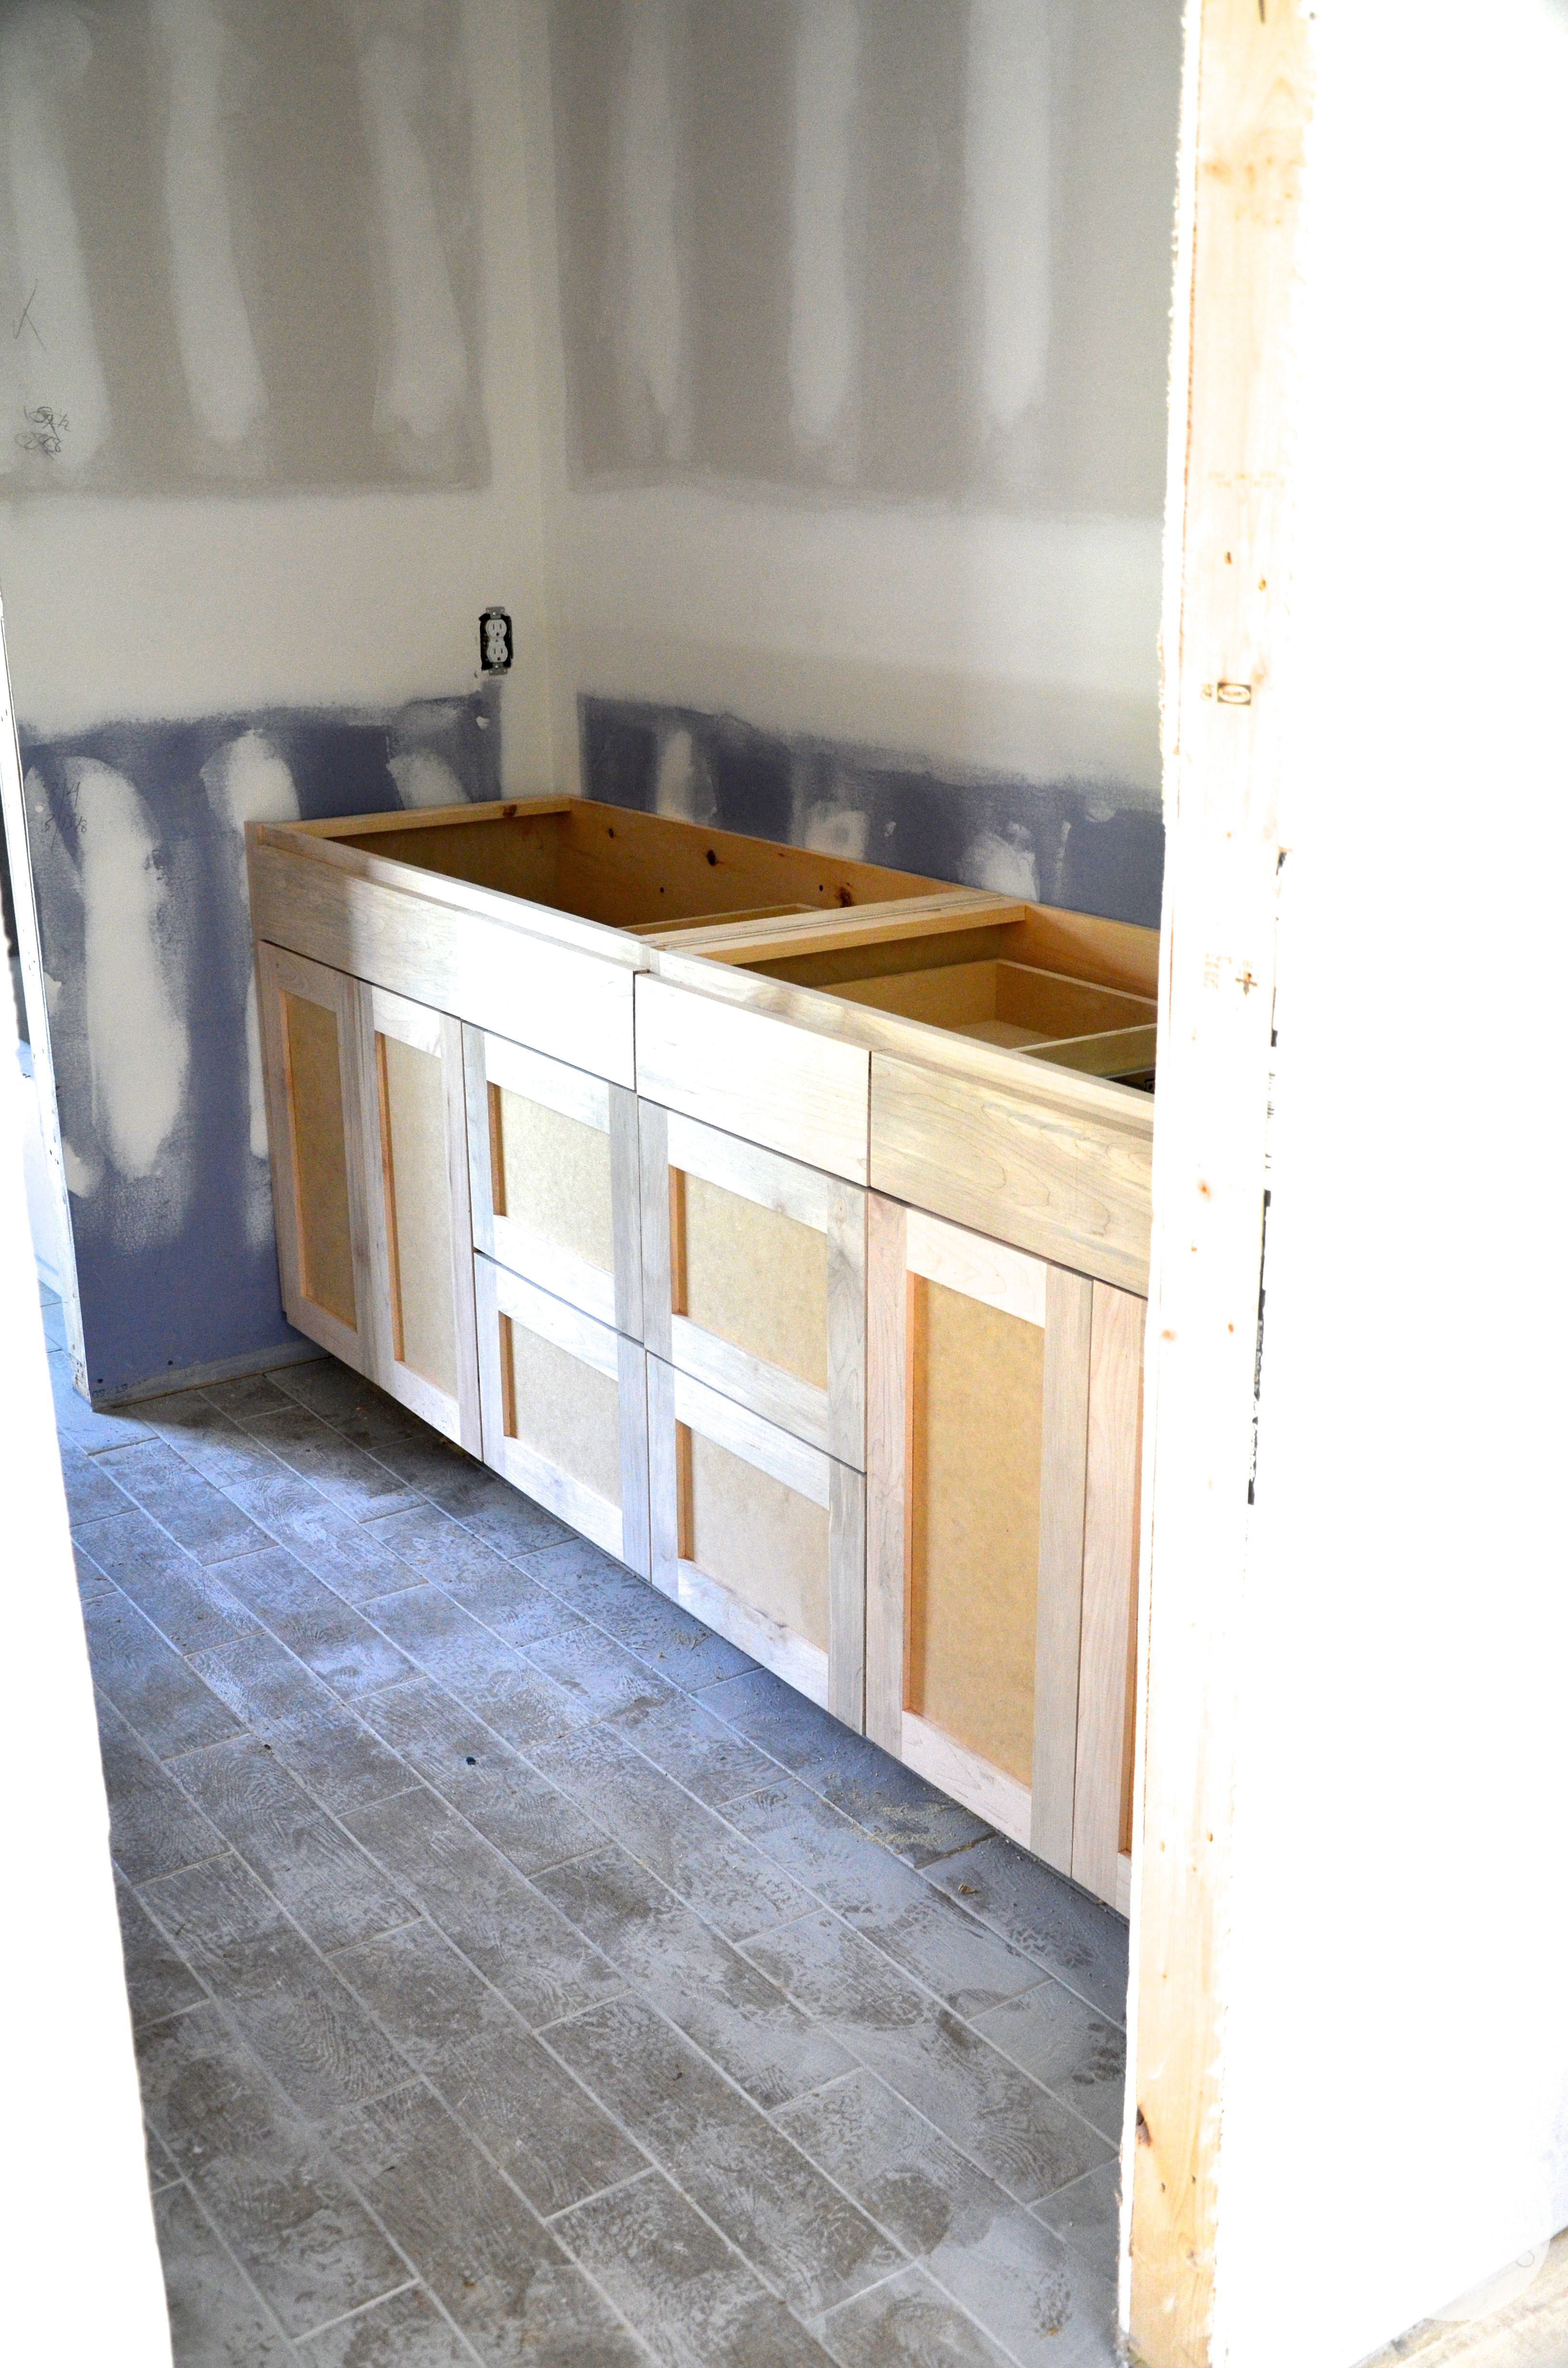 shared bath cabinets unfinished flip - Unfinished Bathroom Cabinets